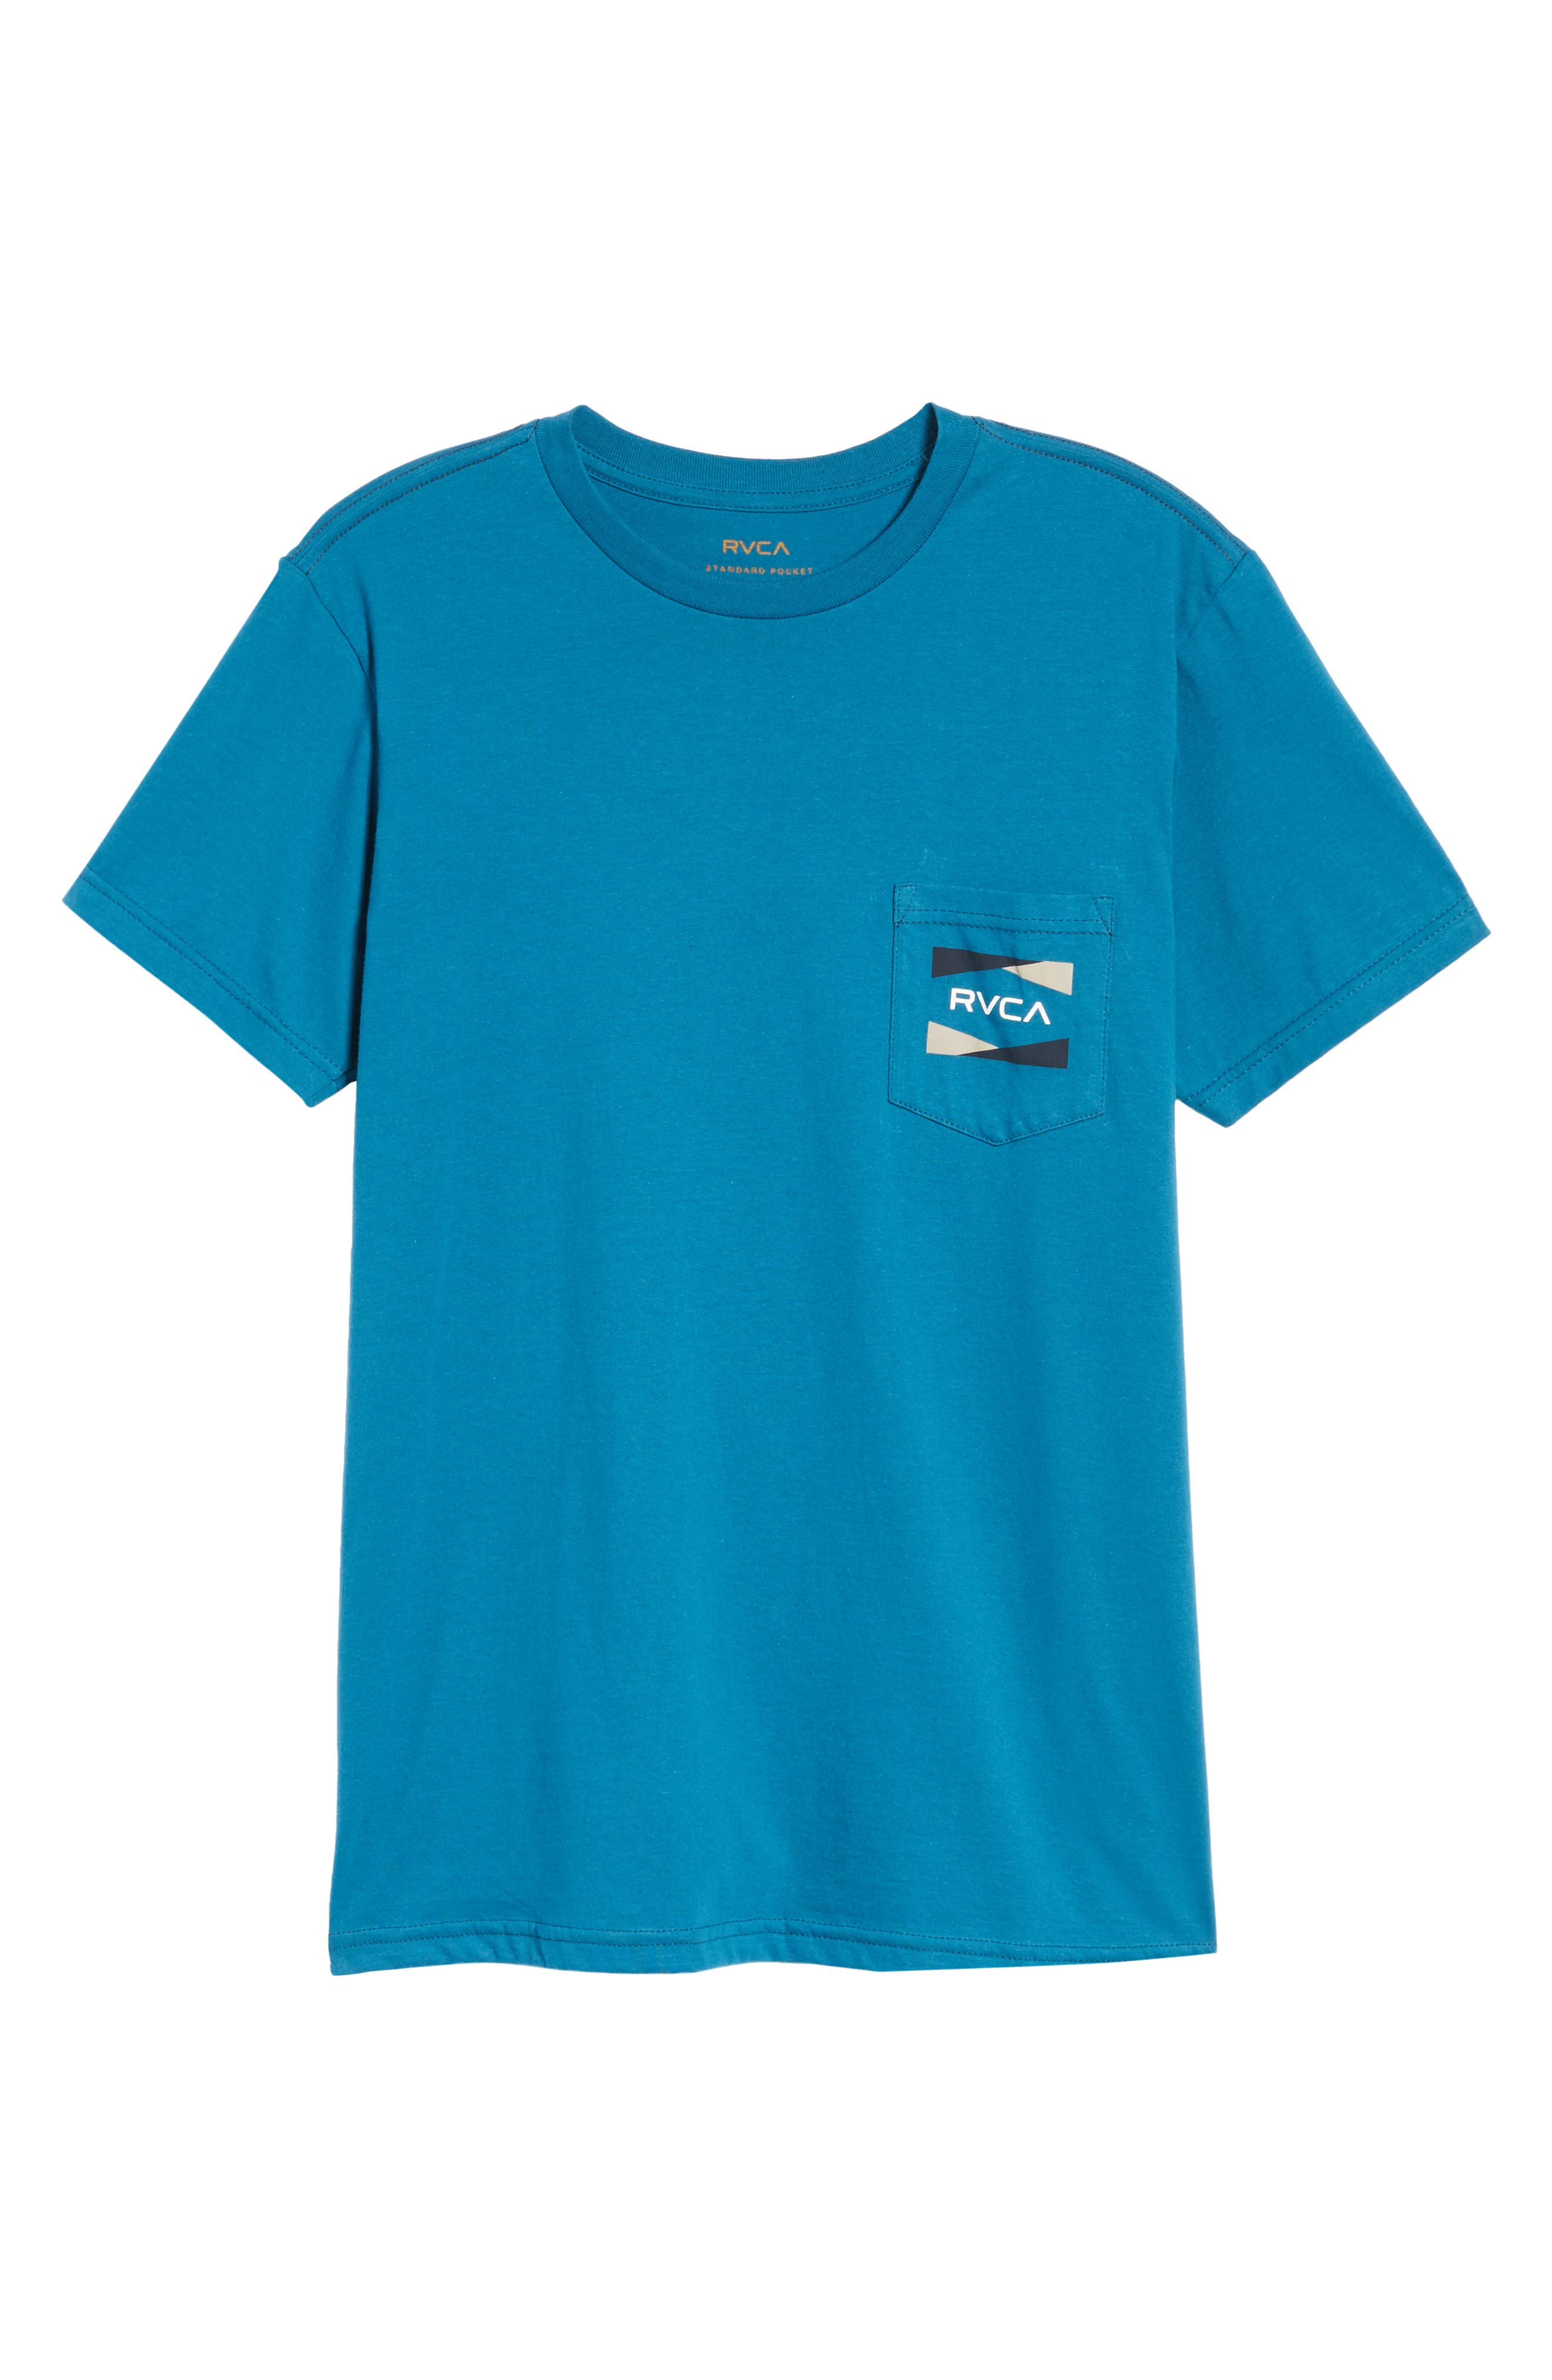 Nation 2 Graphic Pocket T-Shirt,                             Alternate thumbnail 6, color,                             Blue Tide